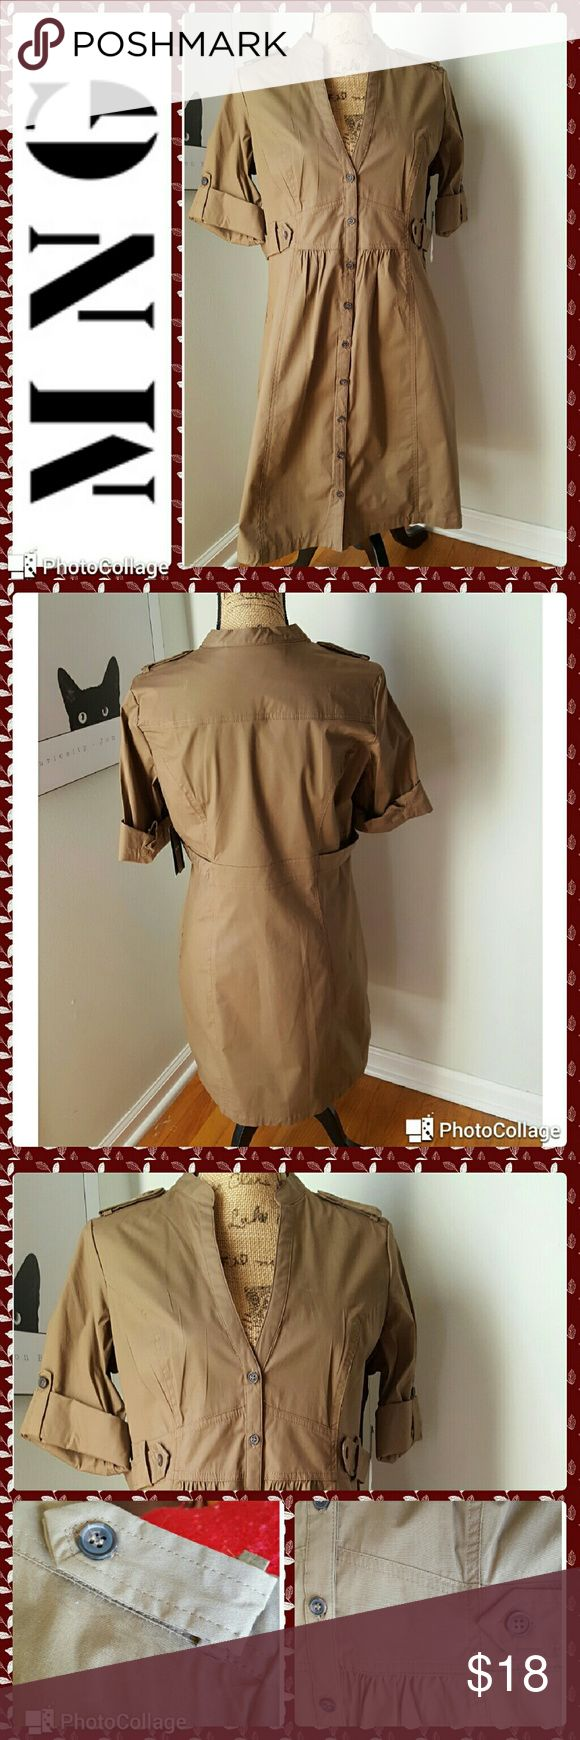 "?? NEW LISTING! NWT. MNG by Mango NWT.  MNG by Mango dress. Khaki cotton with stretch military style dress. Button down front. Short sleeves with rolled cuffs and button placket.  Half waist button plackets on each side. Button shoulder plackets.  Side slip pockets. Measurements are length 36.5"", sleeves 11"", waist 32"", bust 38"". Mango Dresses"